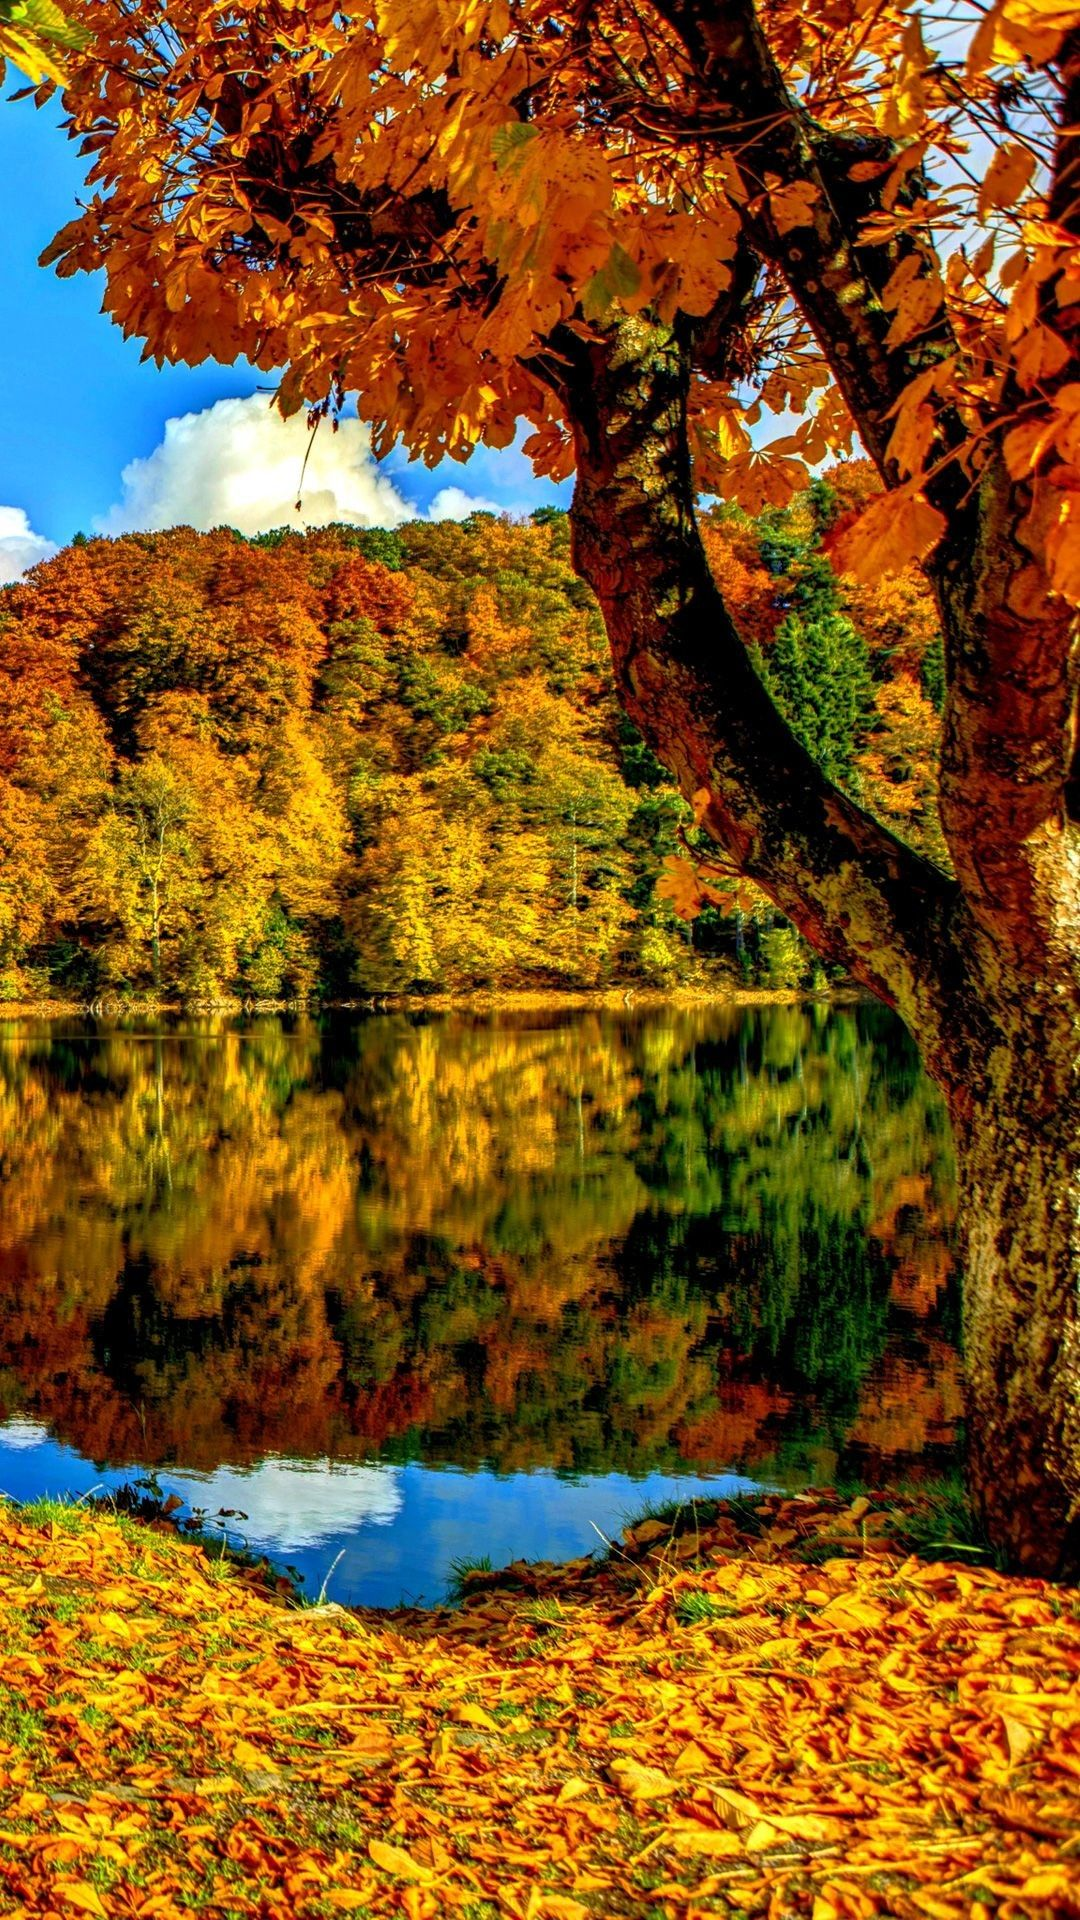 Autumn Wallpaper » Hupages » Download Iphone Wallpapers